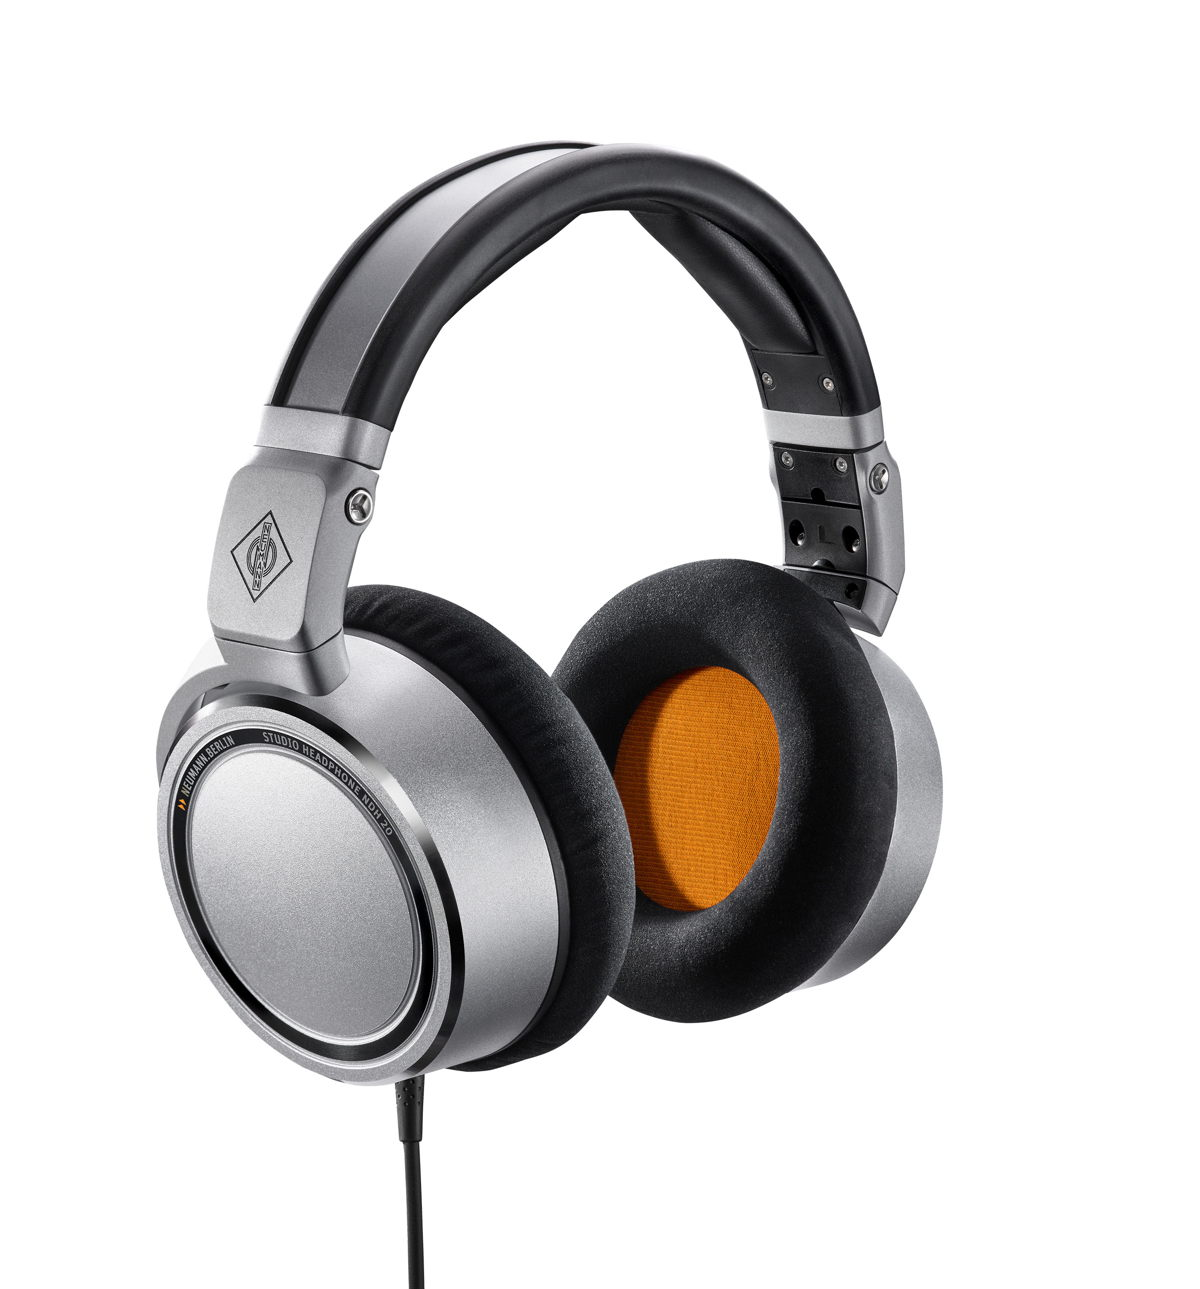 The Neumann NDH 20 is a closed-back studio headphone with a flat frequency response and natural, detailed sound